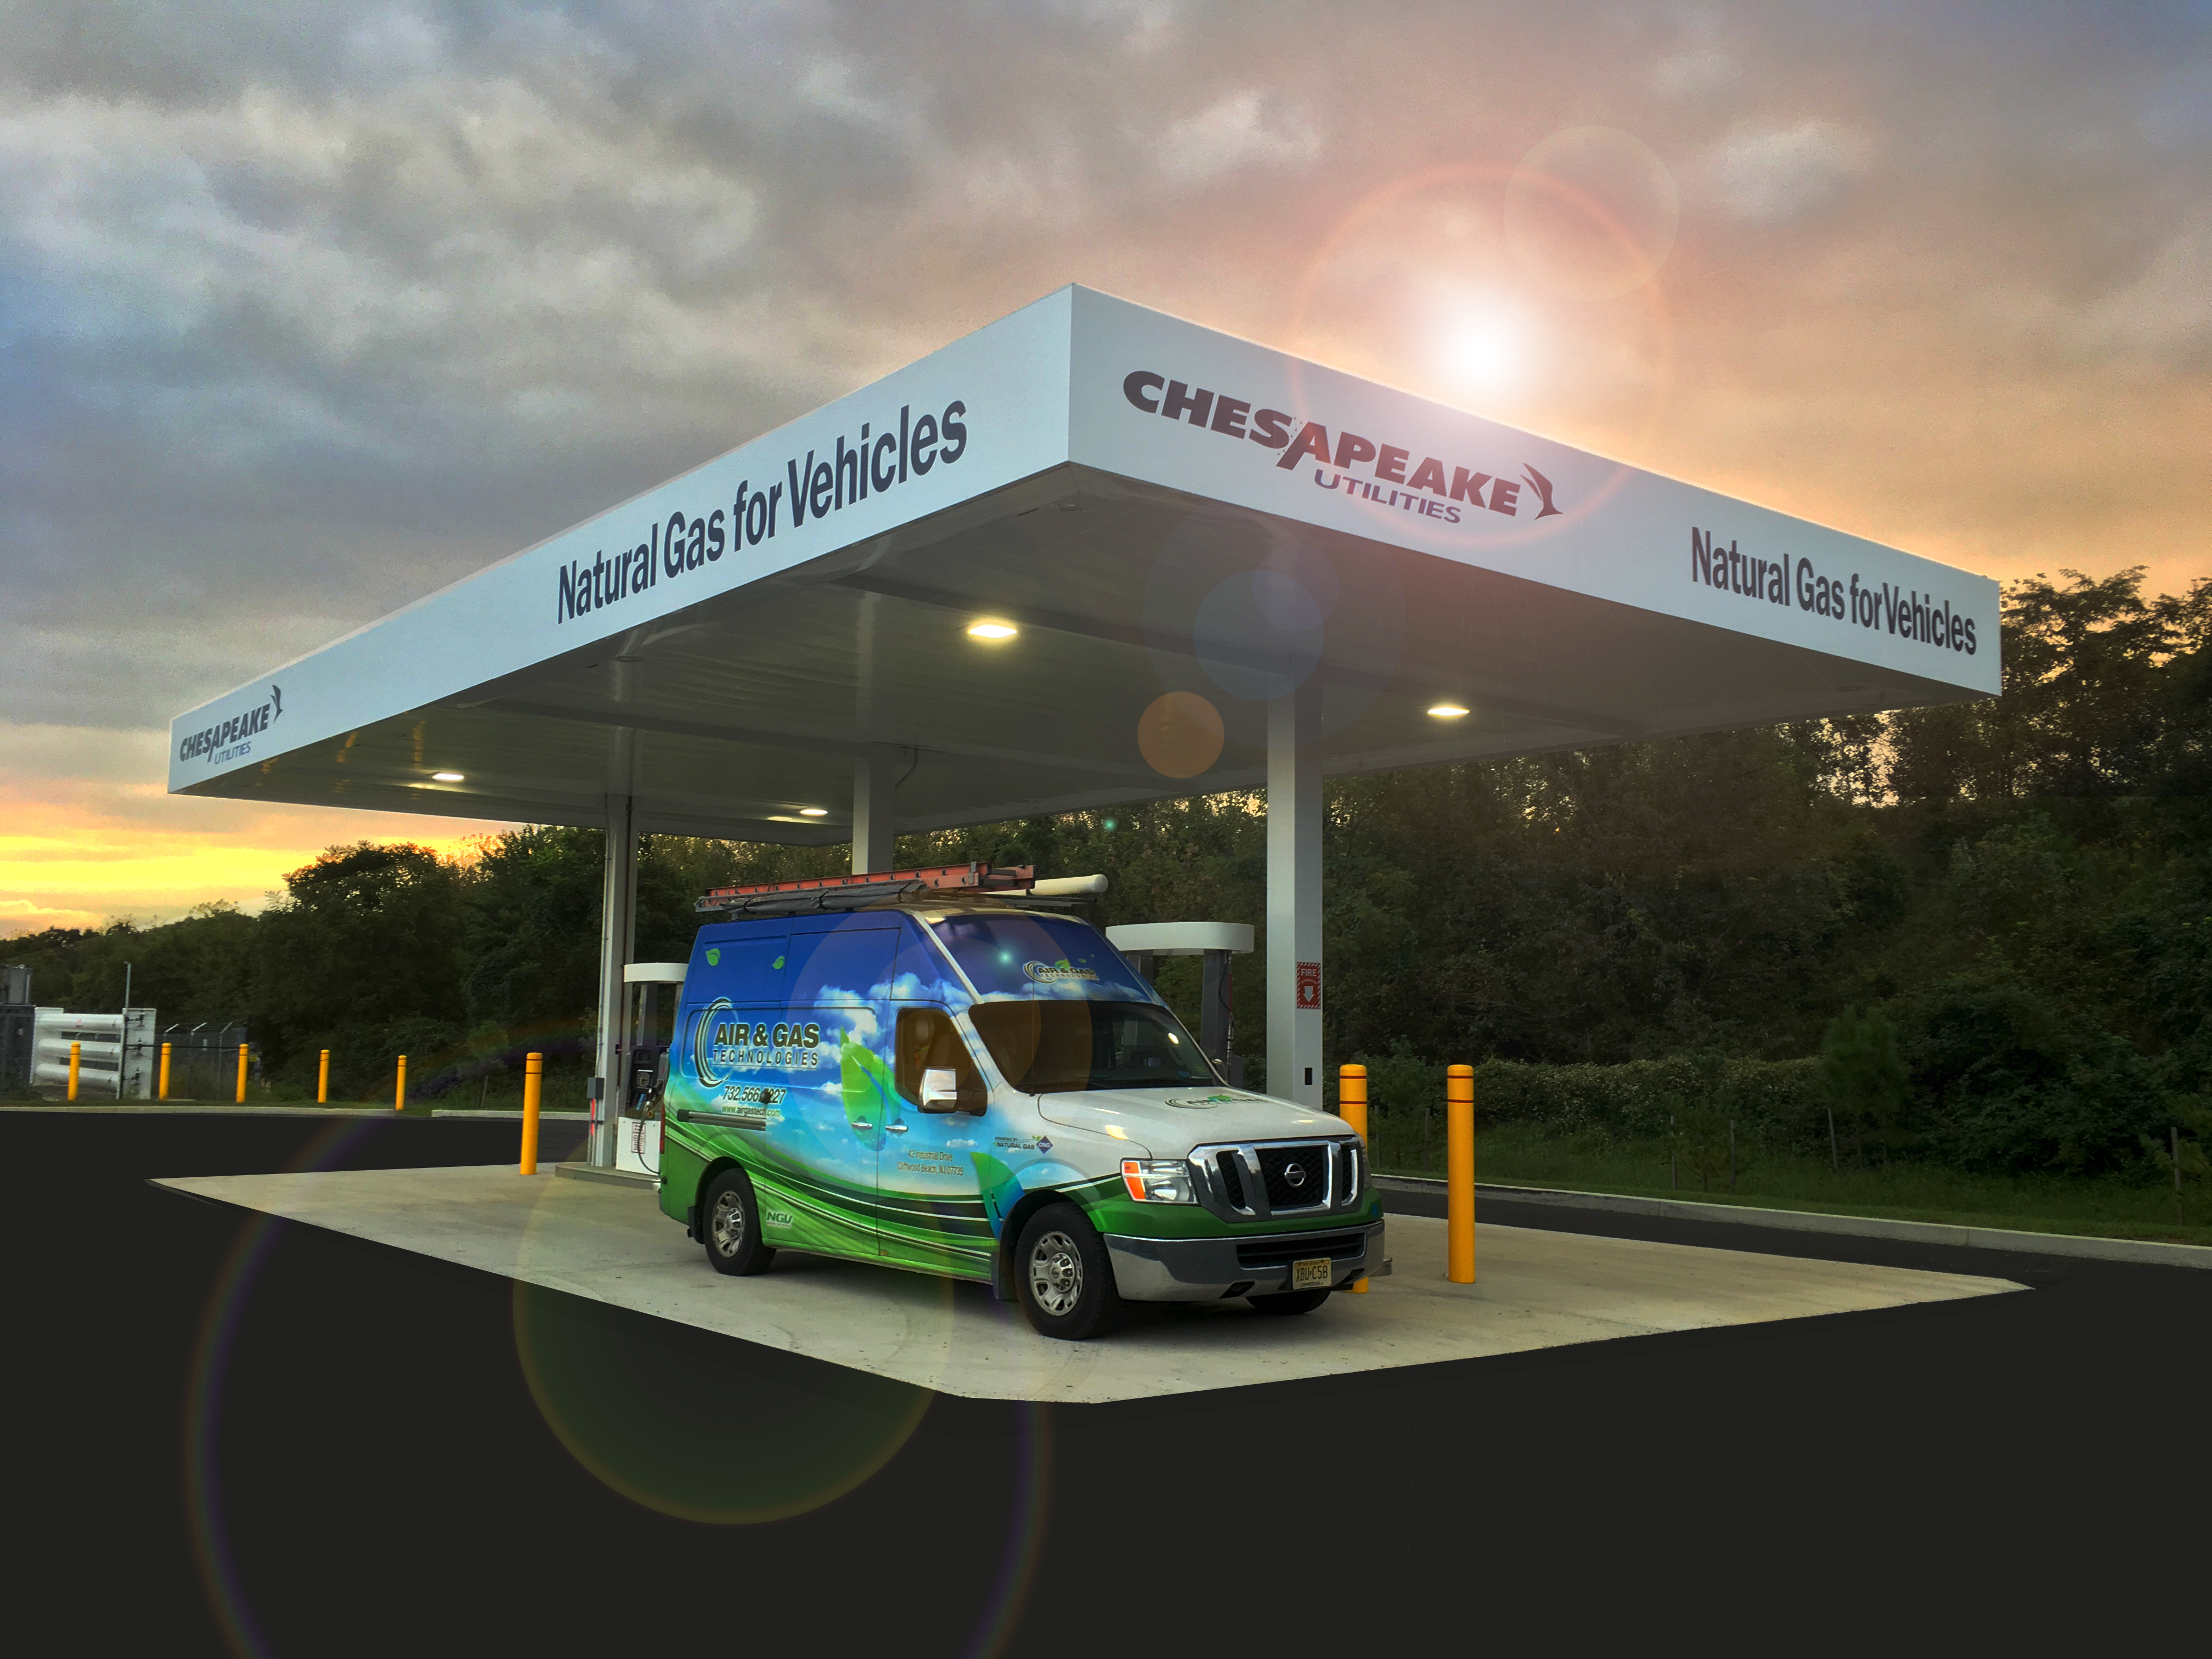 Chesapeake Utilities CNG Station